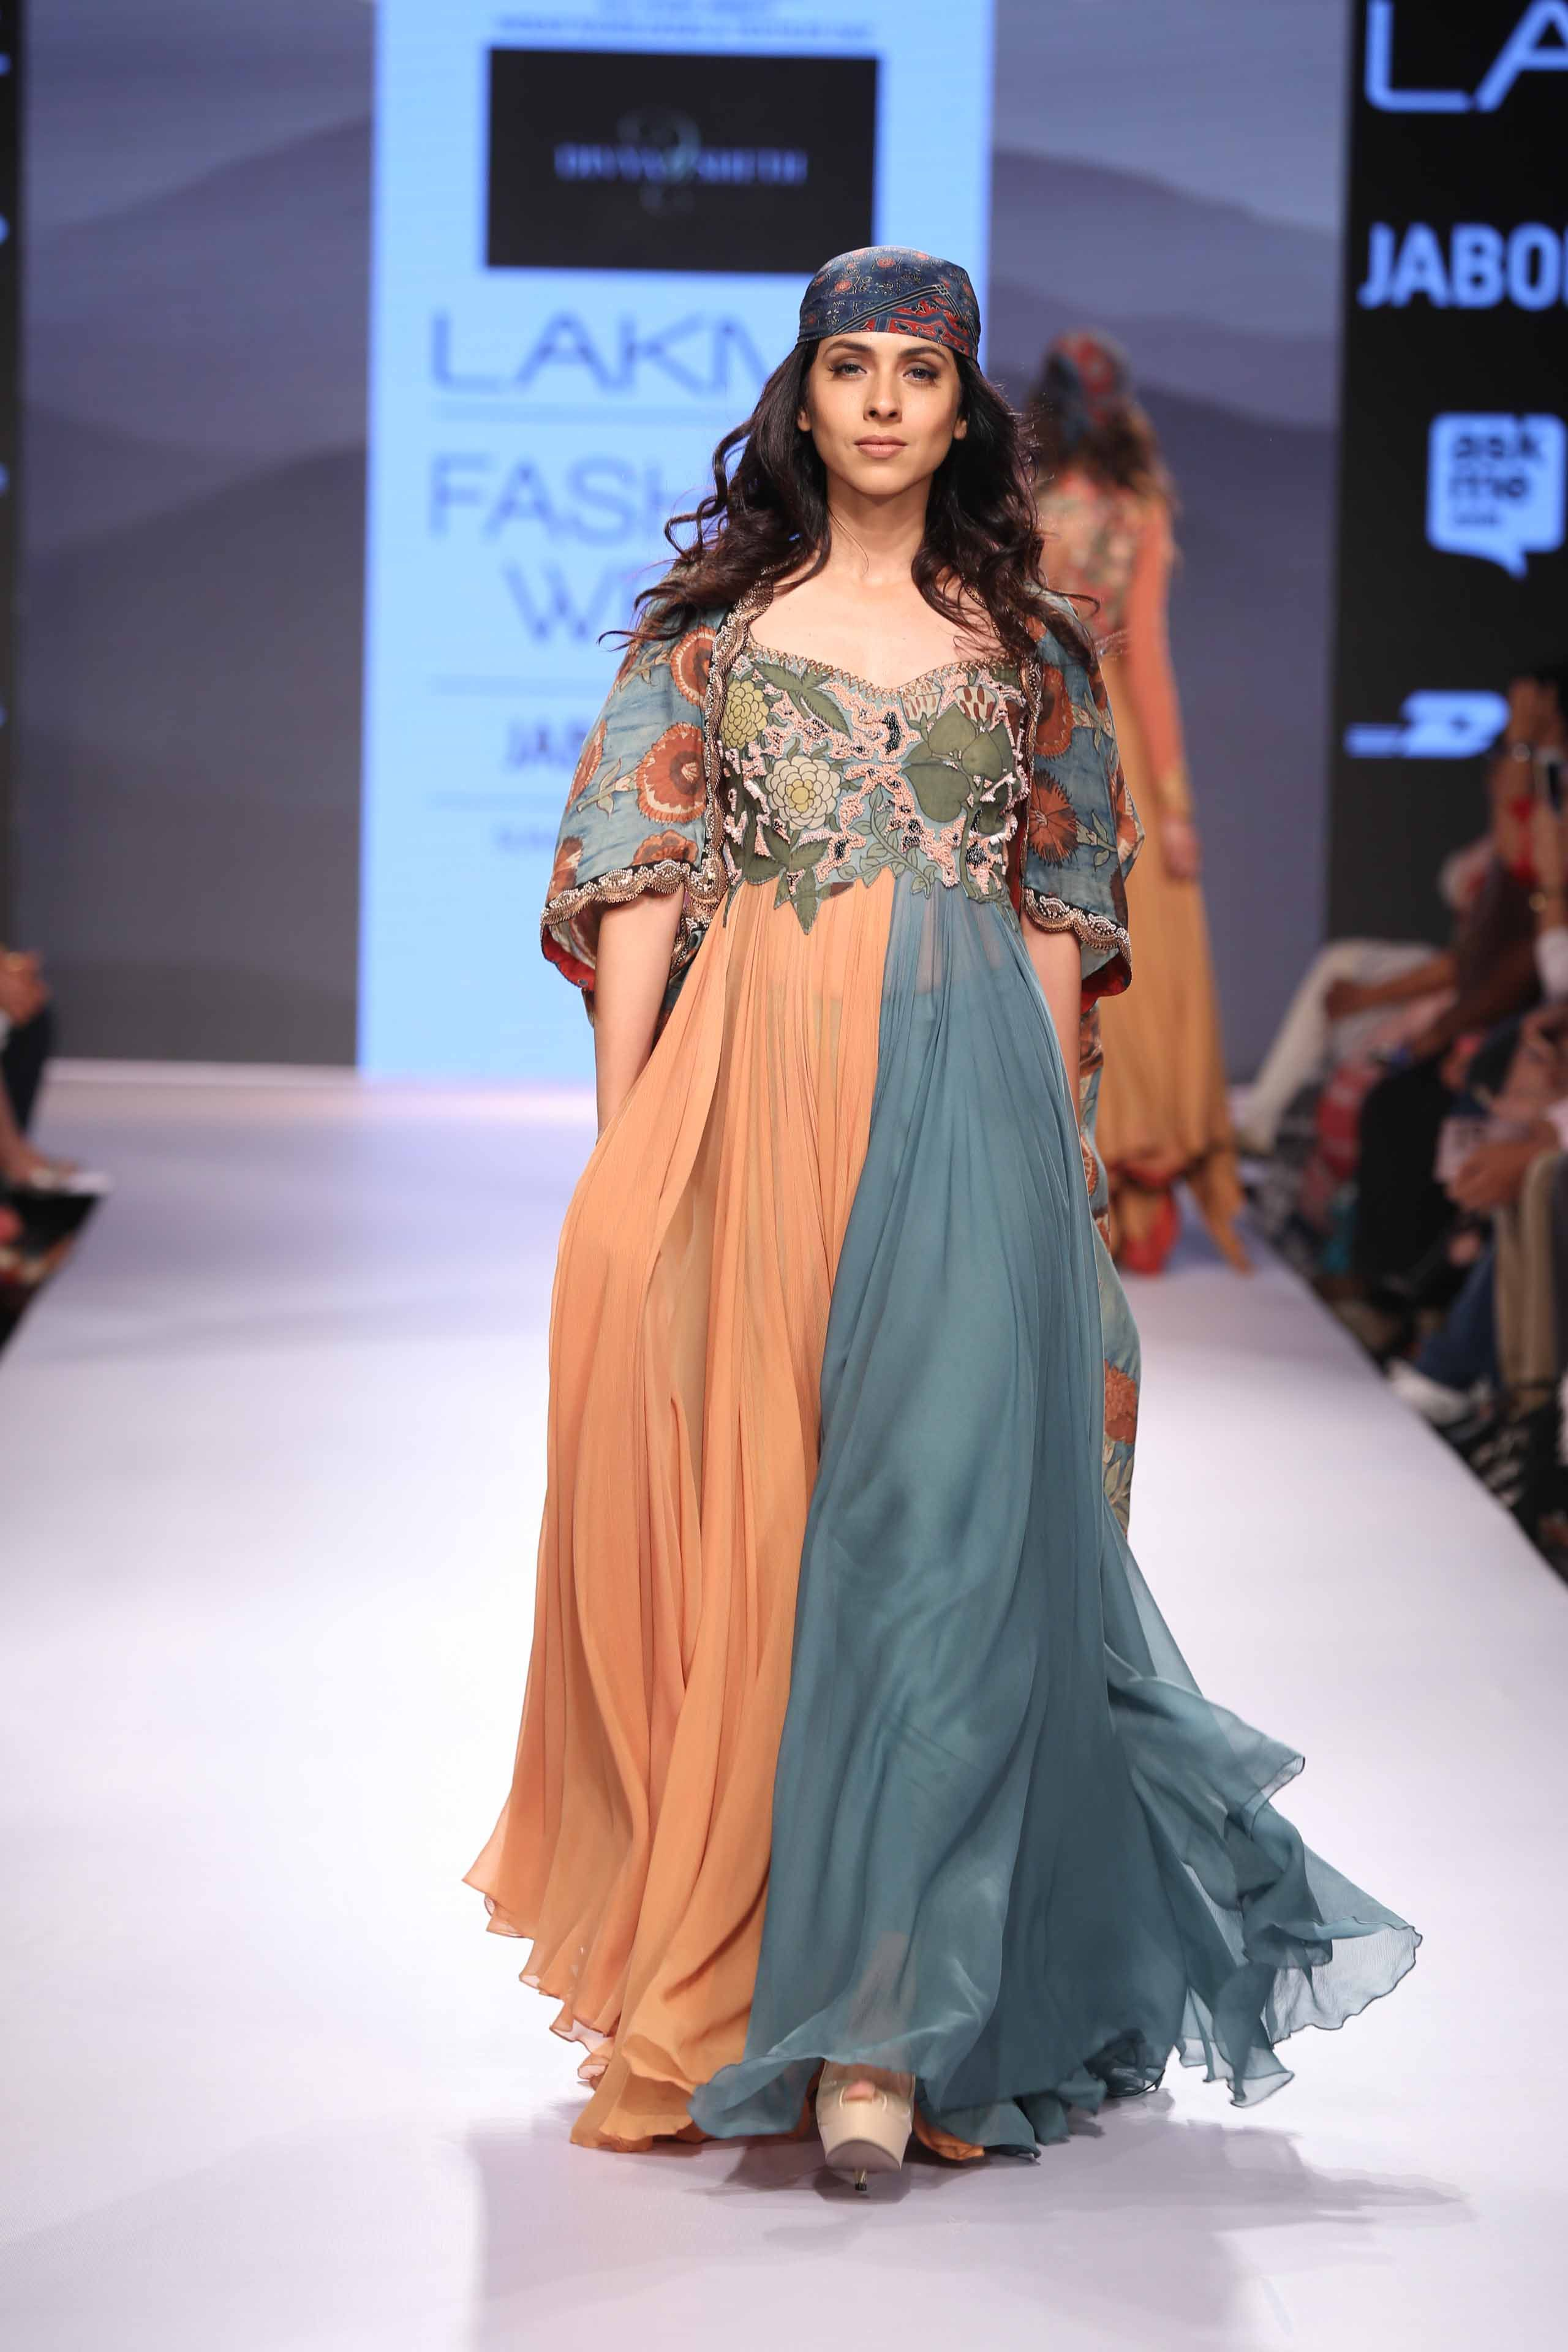 An amazing start start to Day 2 with Divya Sethi's fluid collection at Lakme Fashion Week Summer Resort 15! #JabongLFW